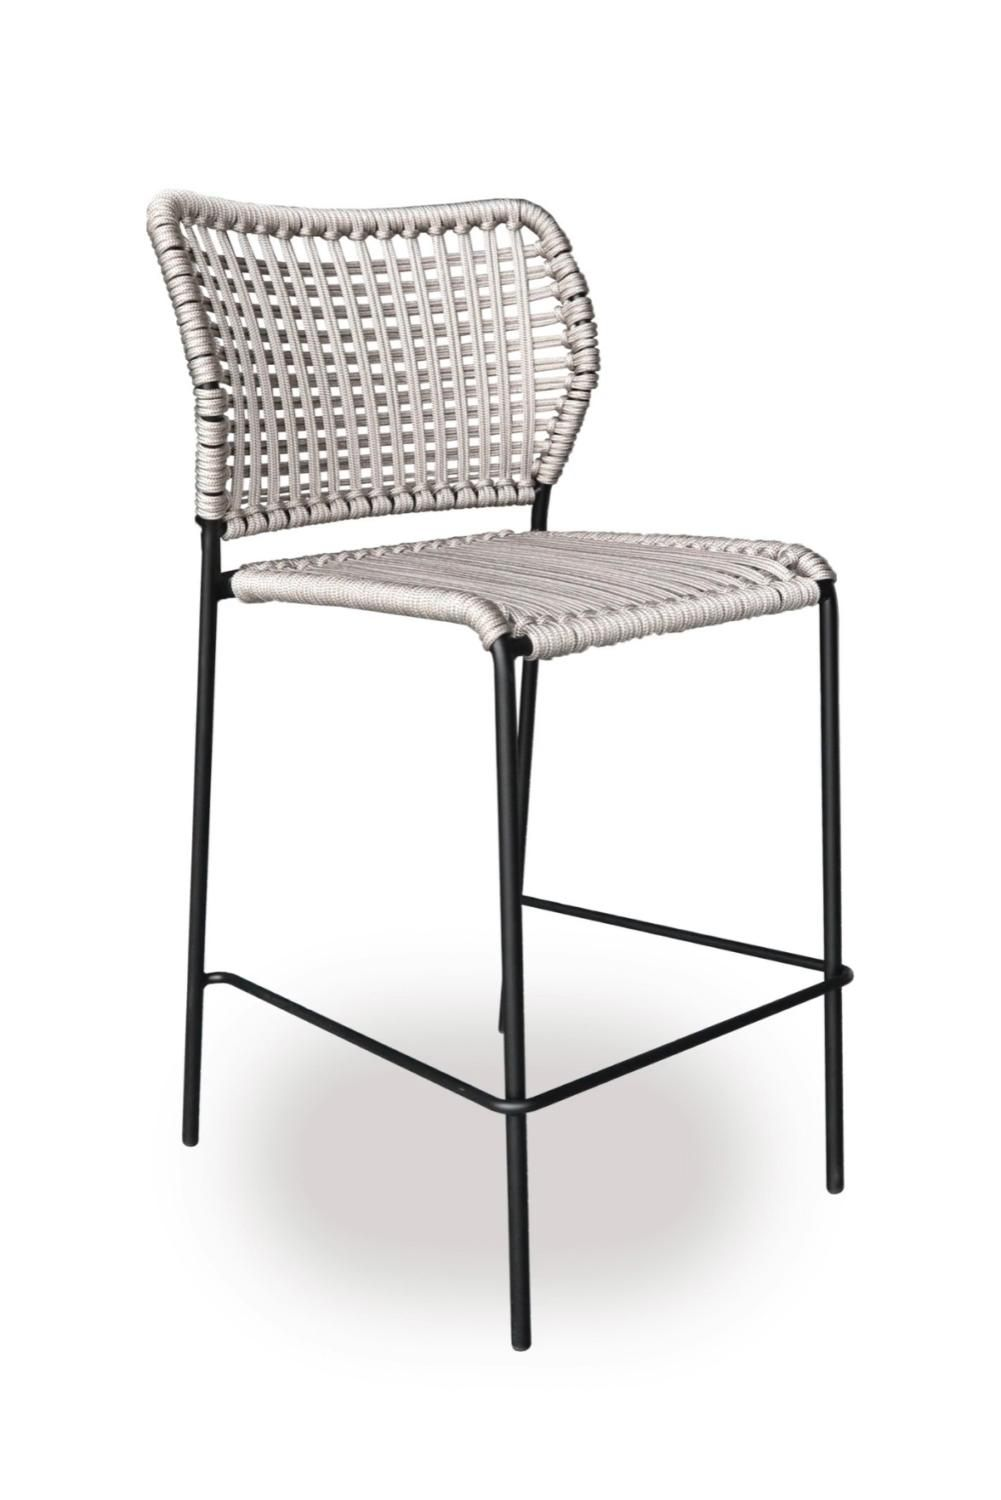 """""""Corda"""" stool for outdoor and indoor"""